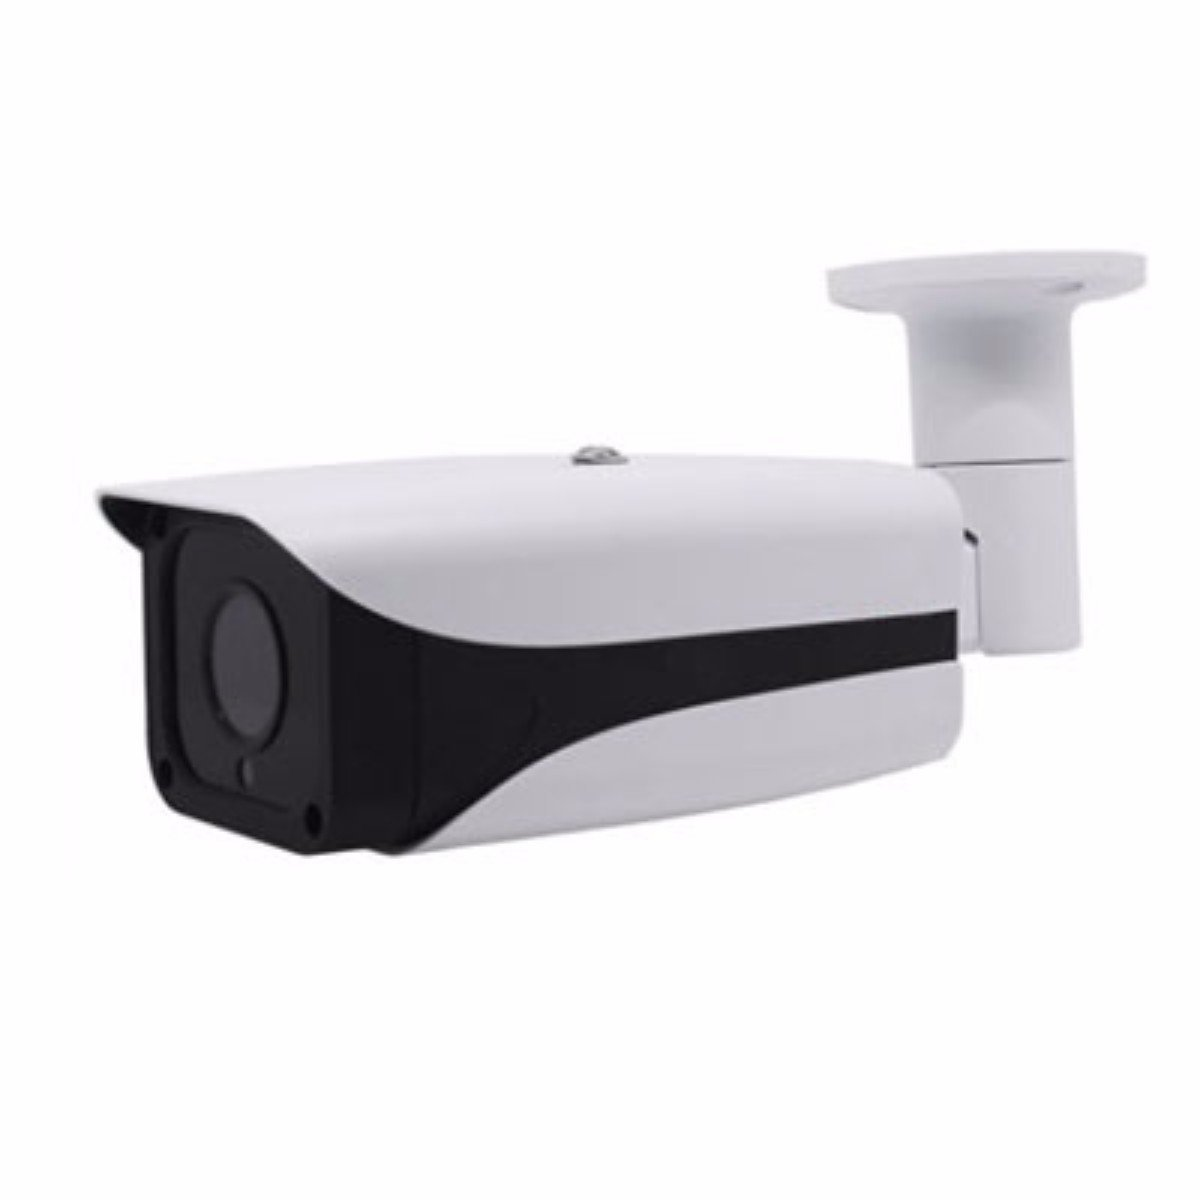 CP Plus CP-VAC-T13R5 1.3 MP 50M IR Bullet Camera (White)